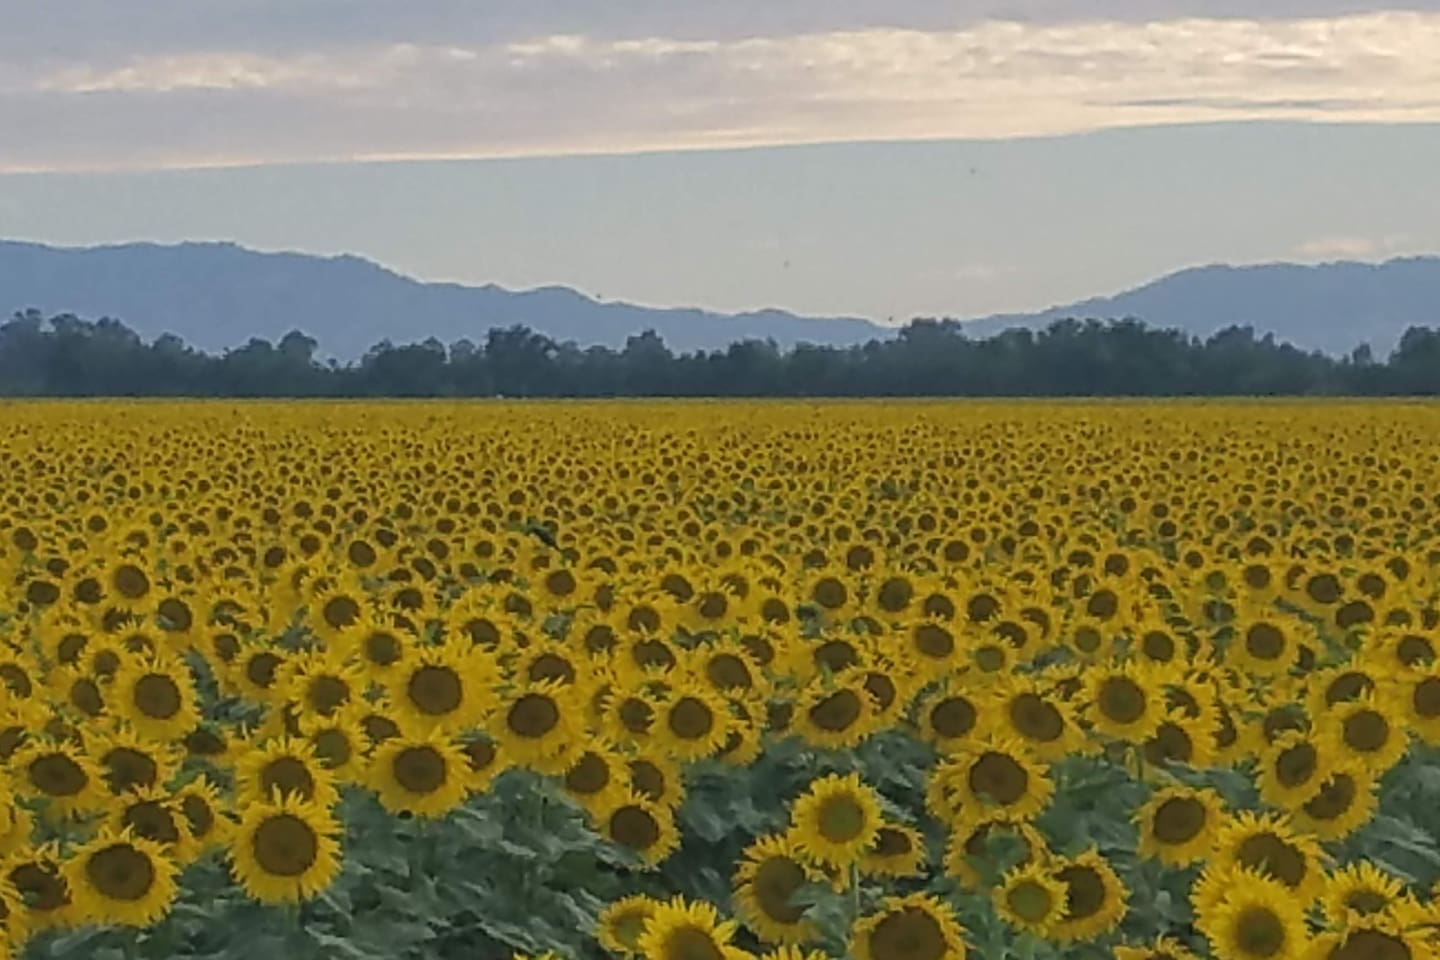 Beautiful sunset with Sunflowers in our neighborhood.